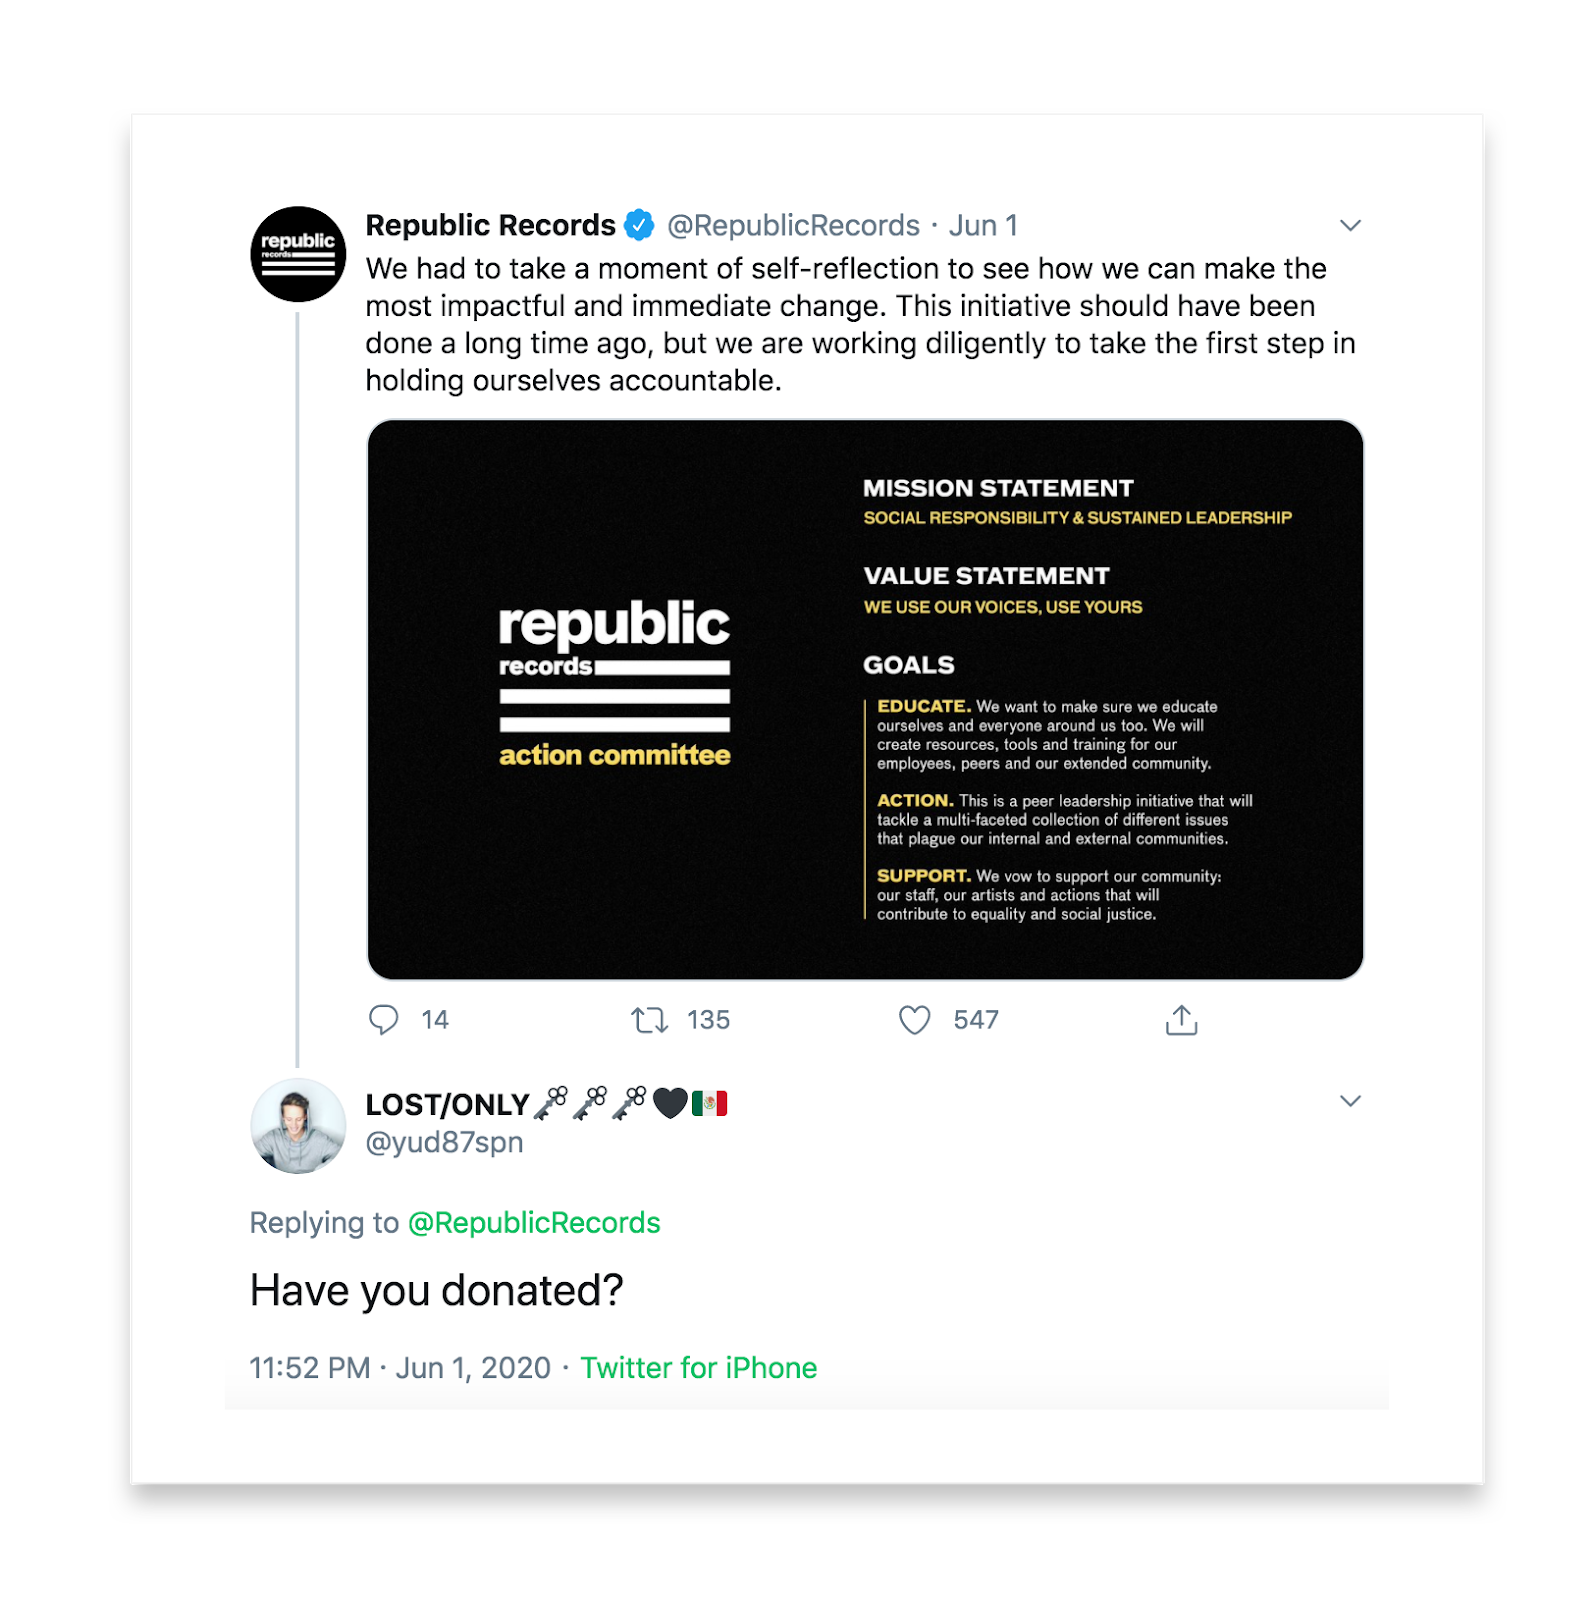 This tweet reads: Republic Records says we had to take a moment of self-reflection to see how we can make the most impactful and immediate change. This initiative should have been done a long time ago, but we are working diligently to take the first step in holding ourselves accountable. The tweet image lists their mission statement, value statement, and goals as it relates to racial equality. The reply by LOST/ONLY reads Have you donated?